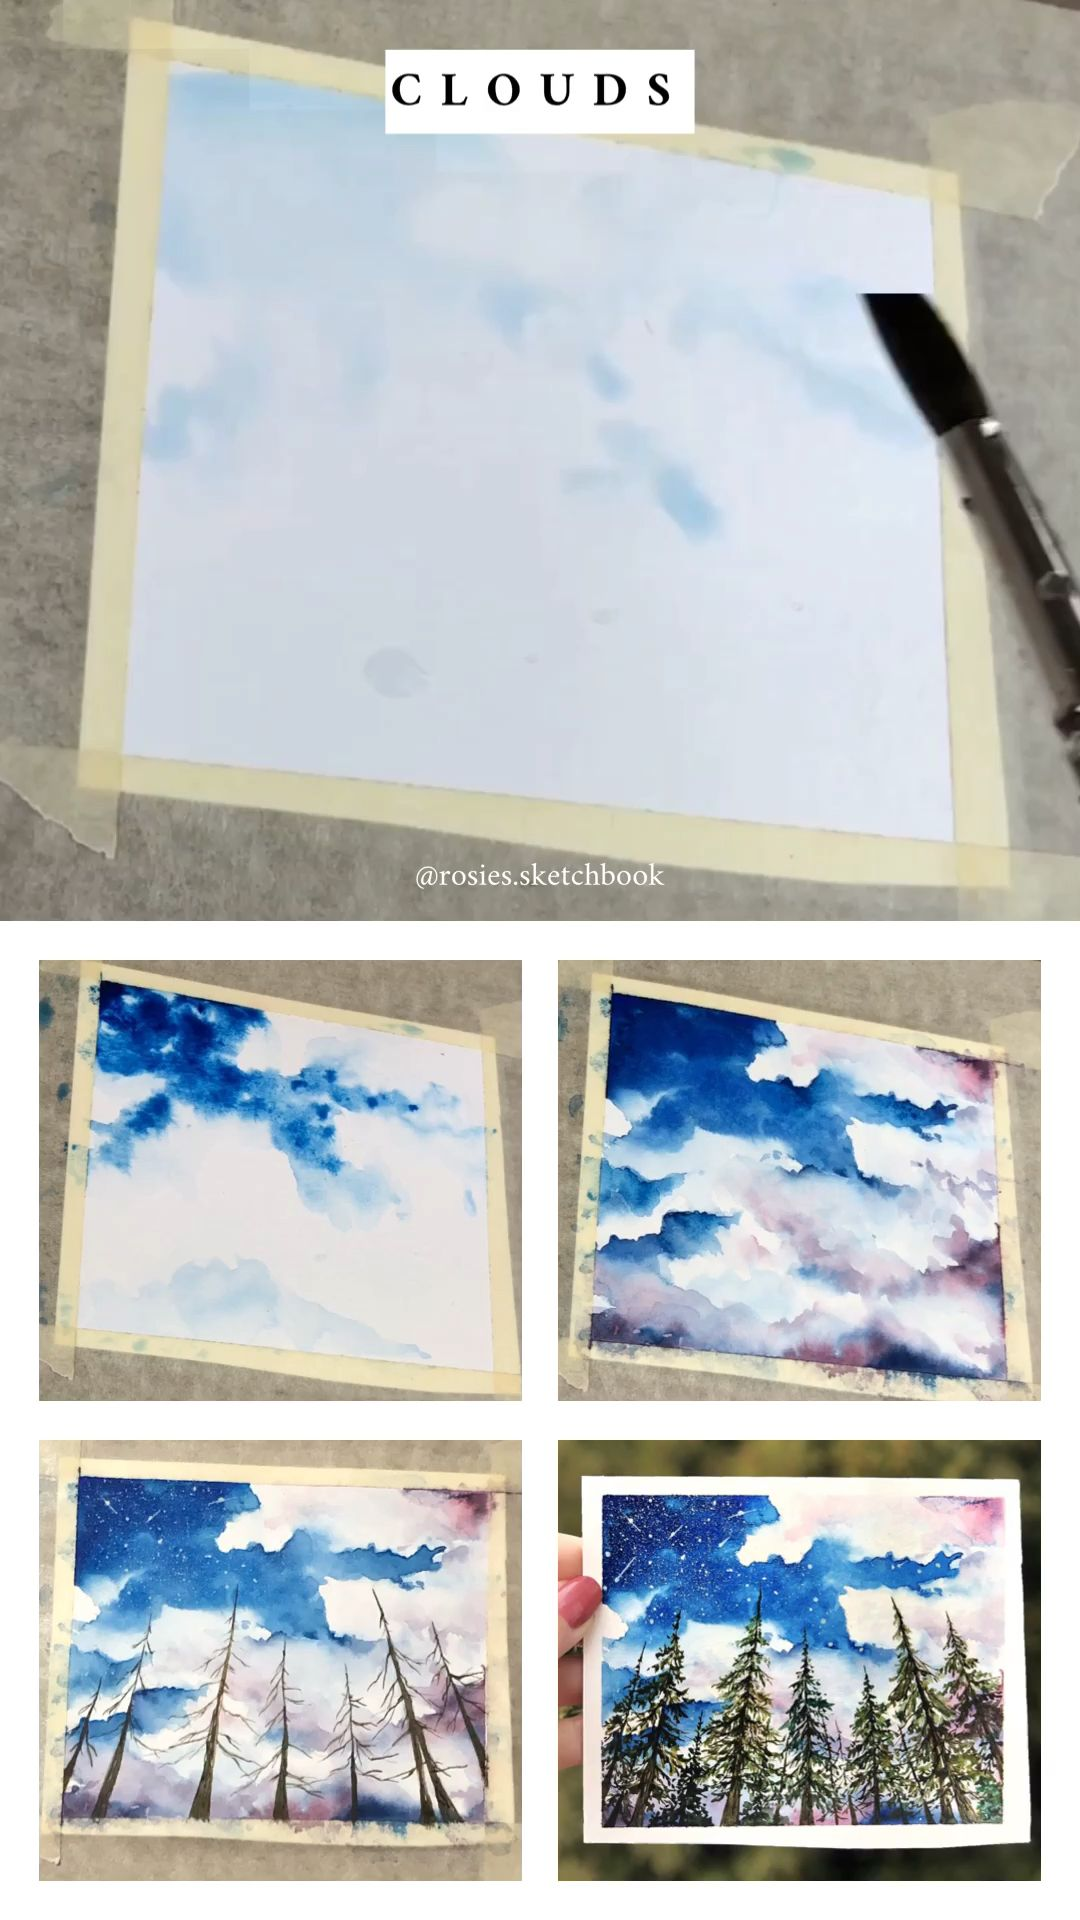 Mini Cloud Painting Tutorial With Step By Step Process Photos